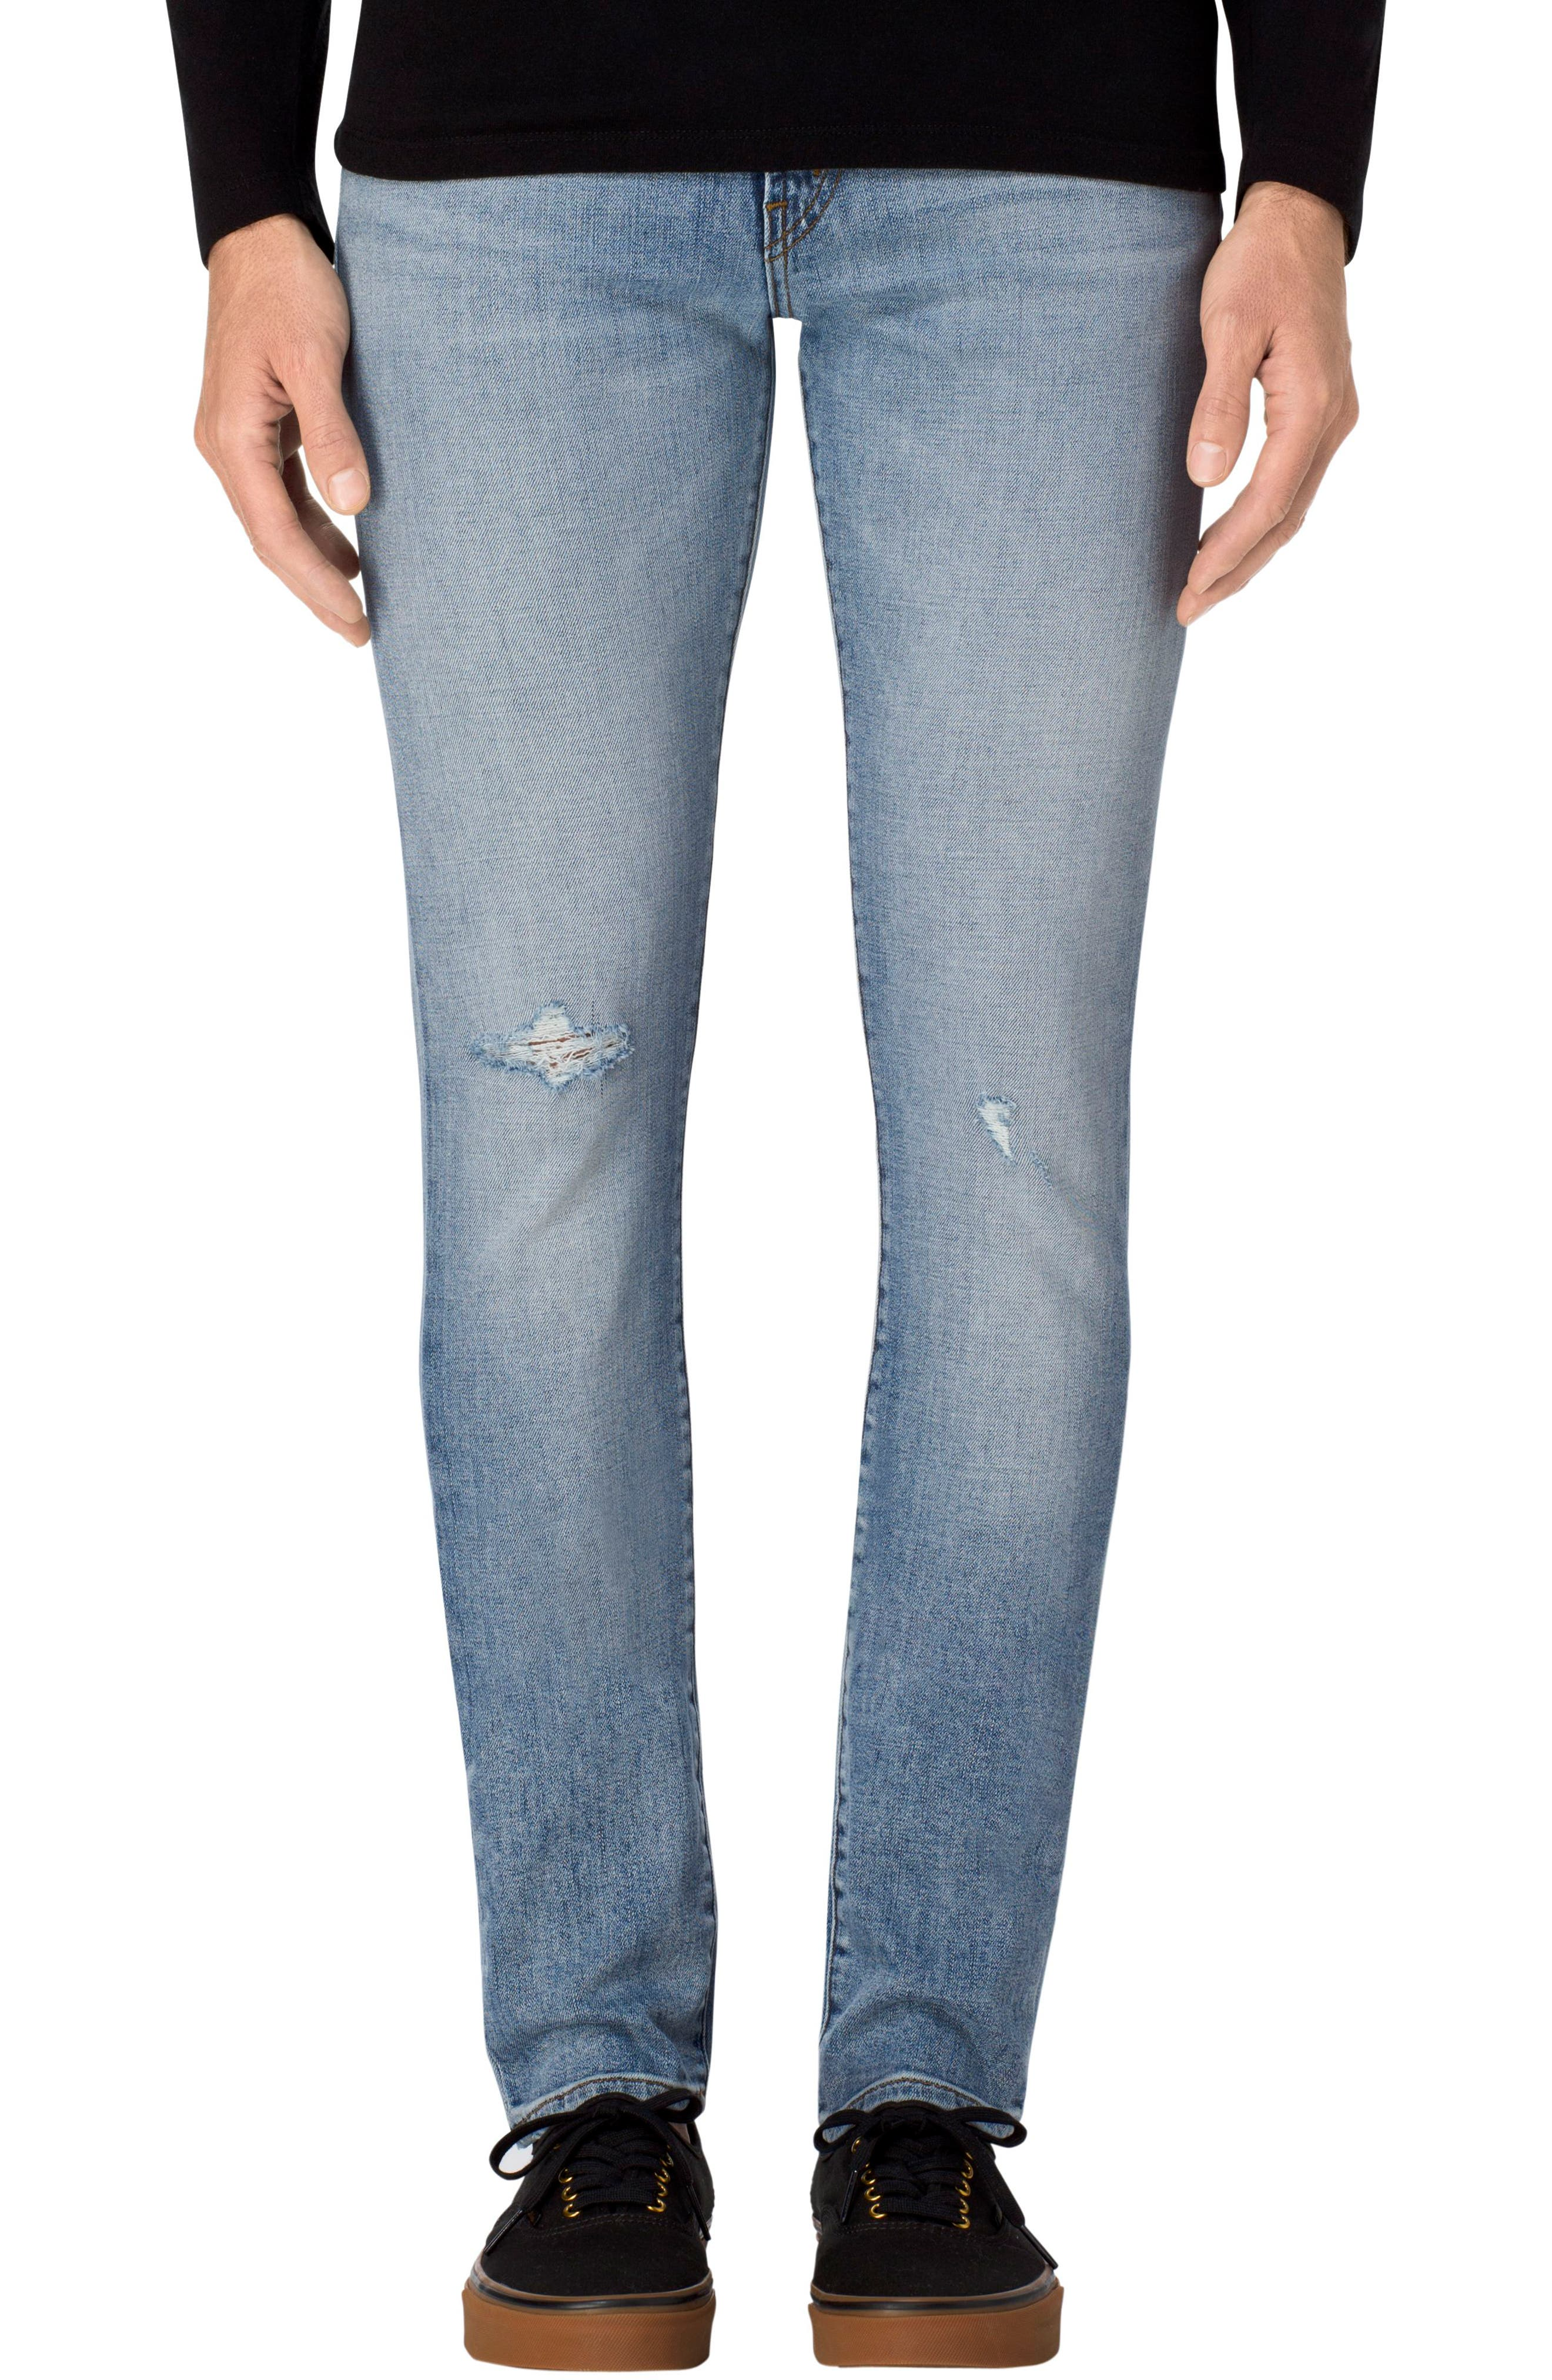 Mick Skinny Fit Jeans,                         Main,                         color, 450